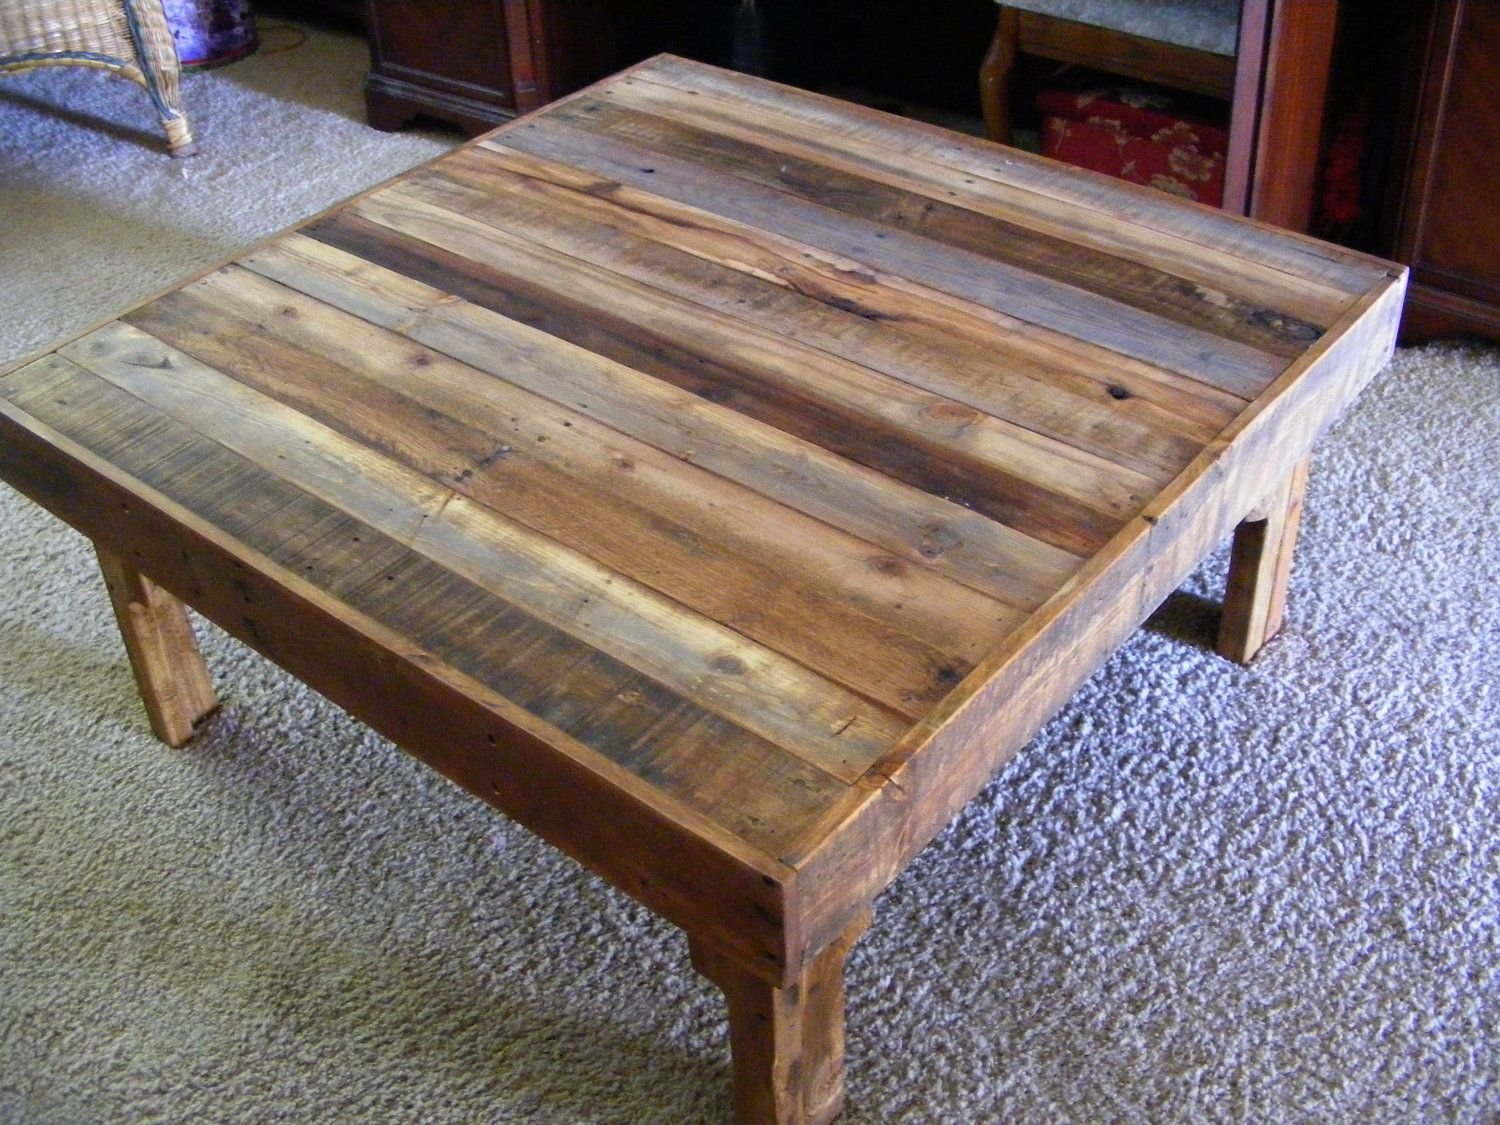 - Square Rustic Reclaimed Wood Coffee Table #livingroom Wood Coffee Table  Rustic, Square Wooden Coffee Table, Coffee Table